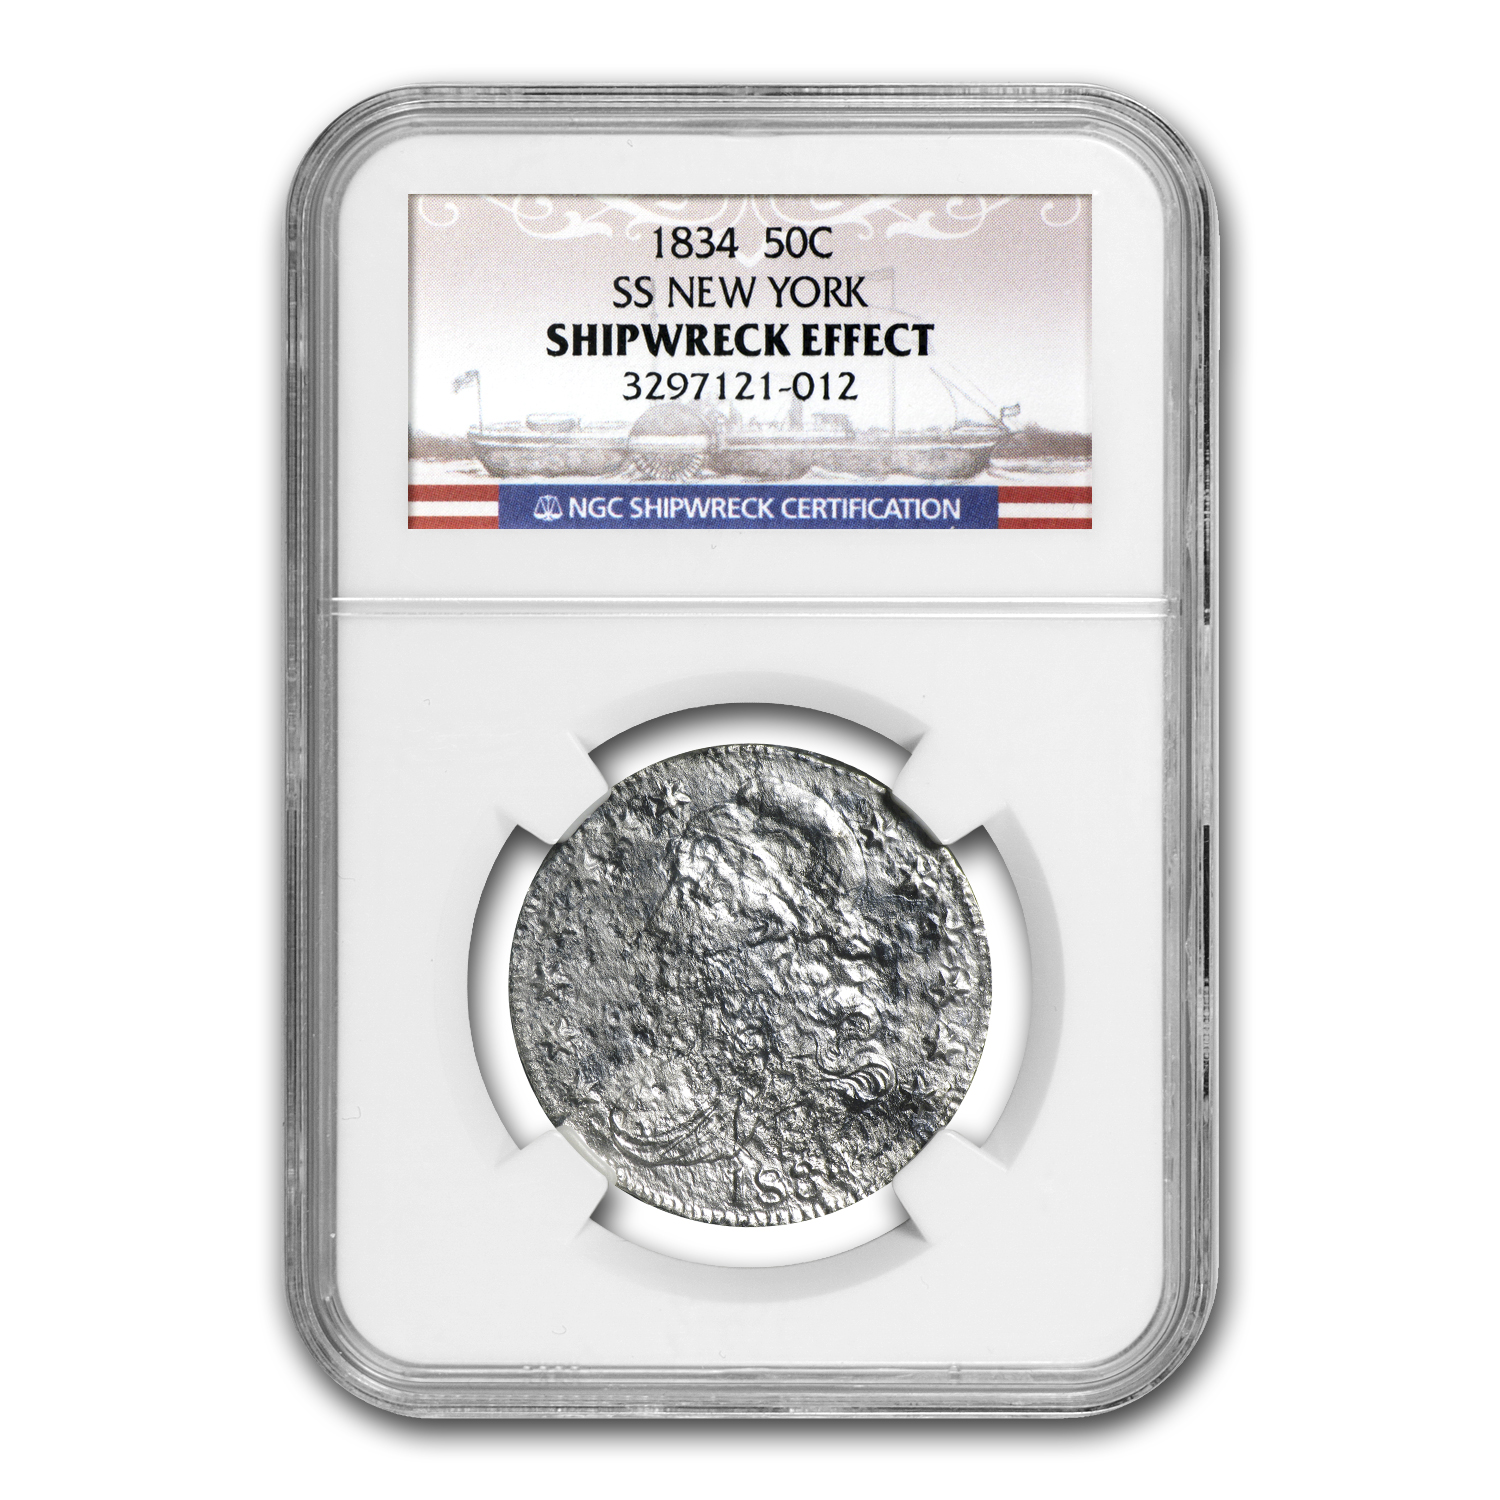 1834 Bust Half Dollar - SS New York - NGC - Shipwreck Effect